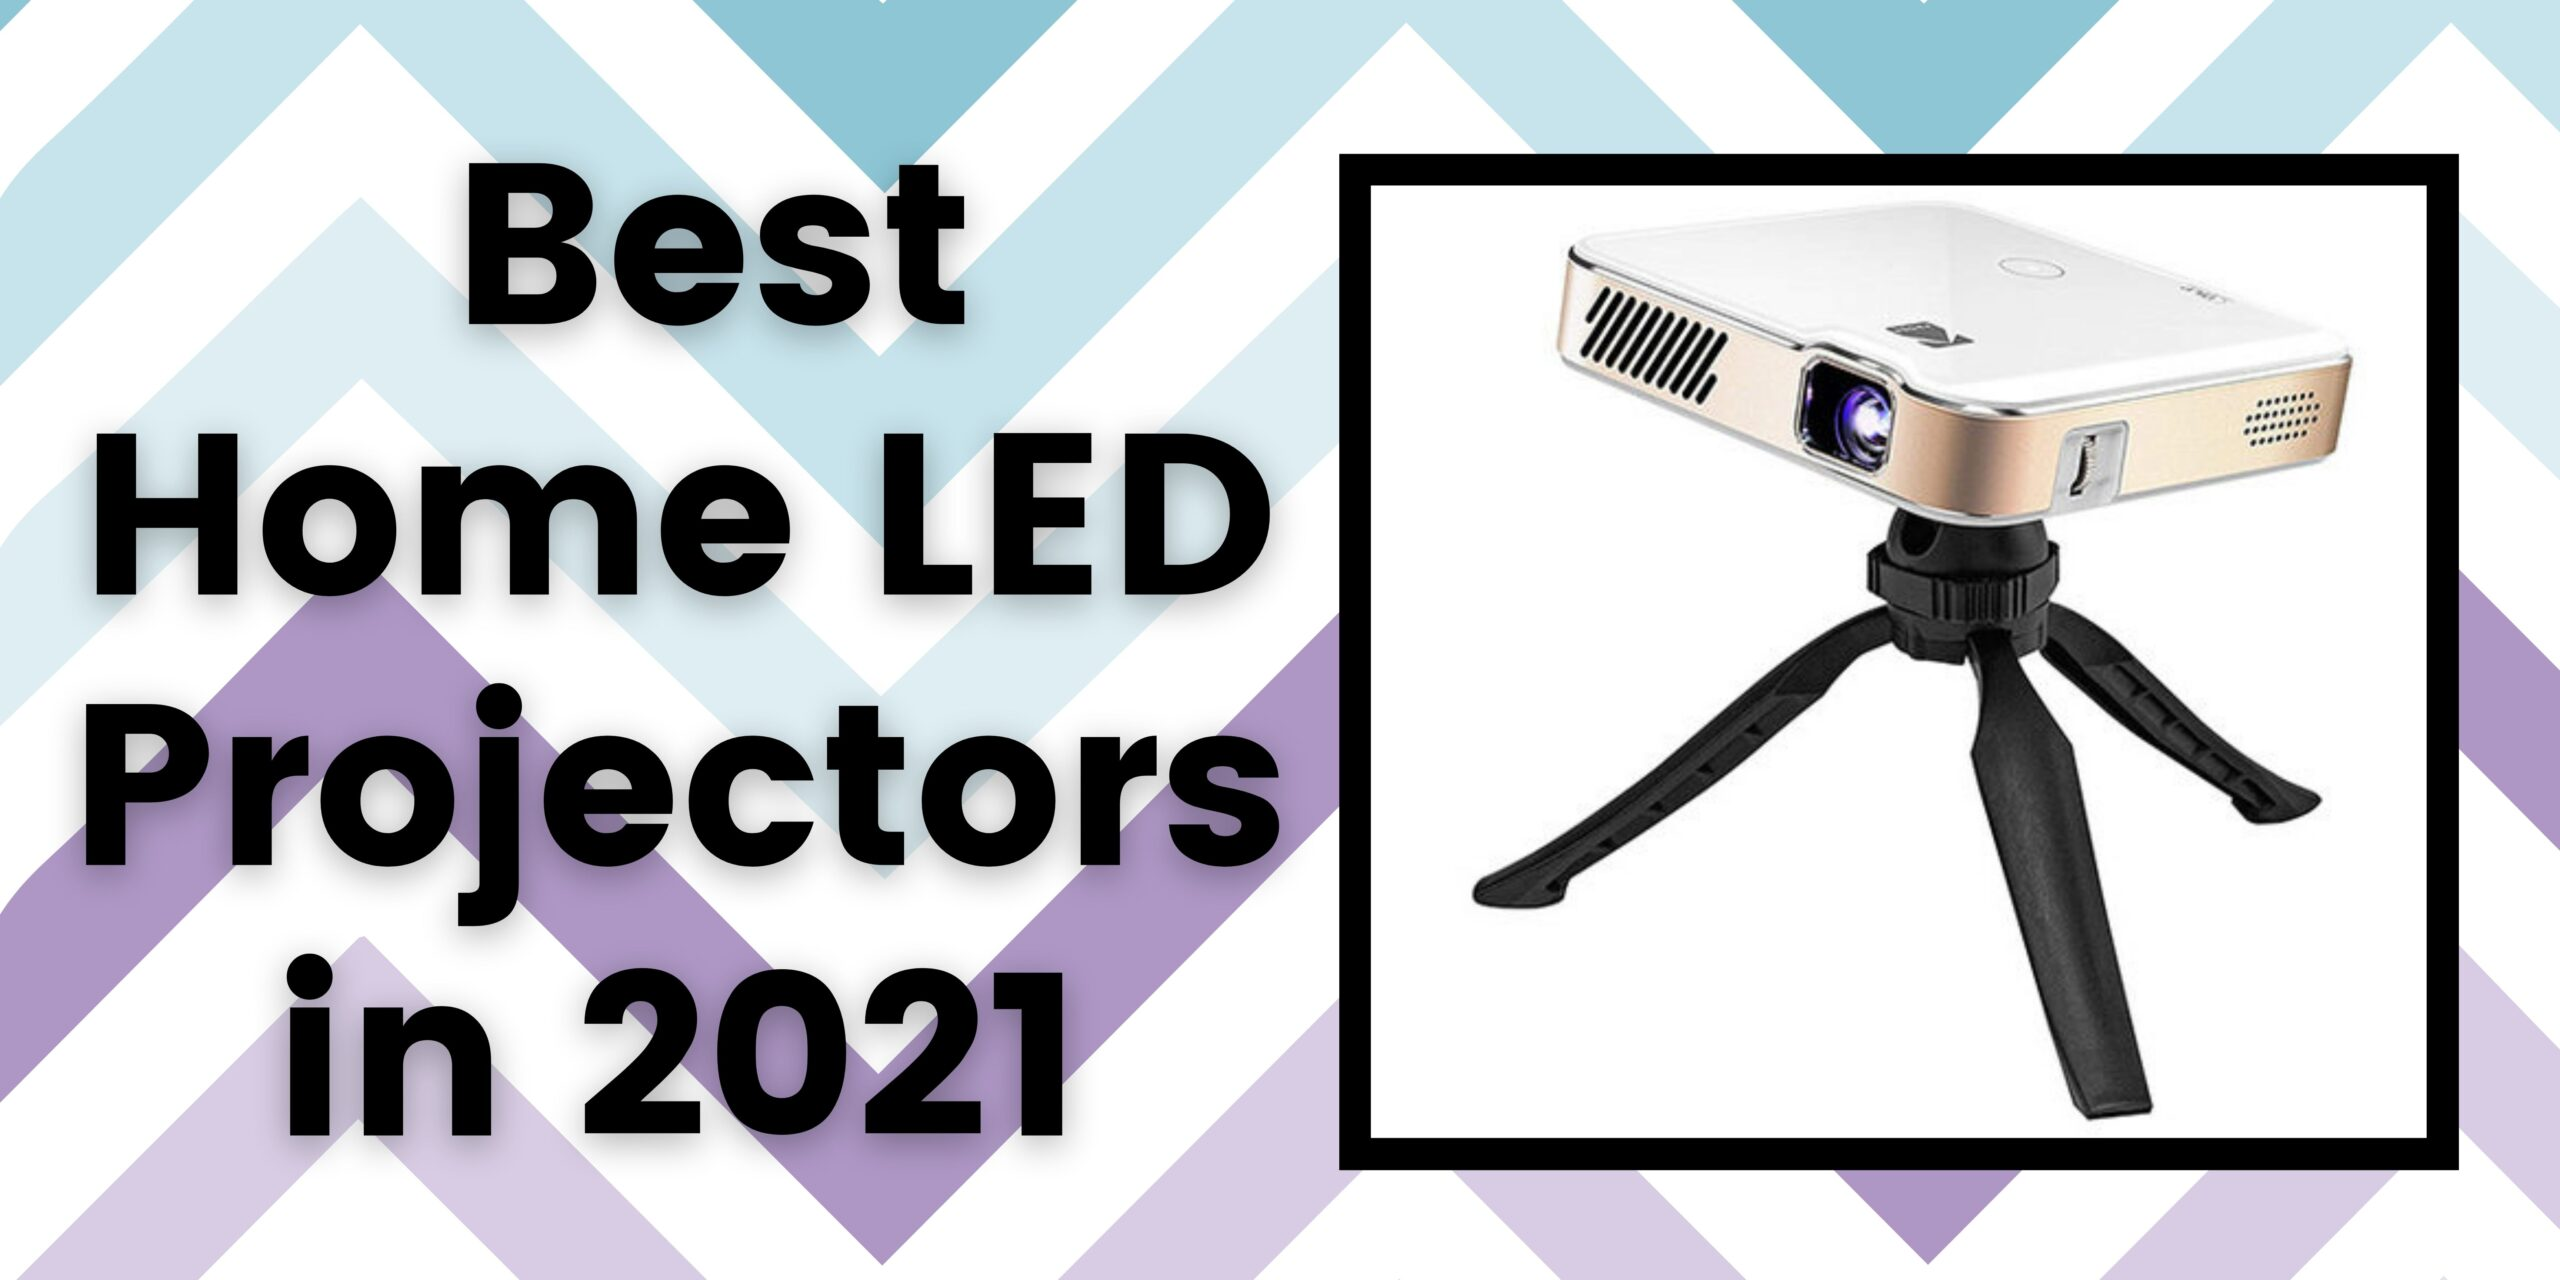 Best Home LED Projectors in 2021